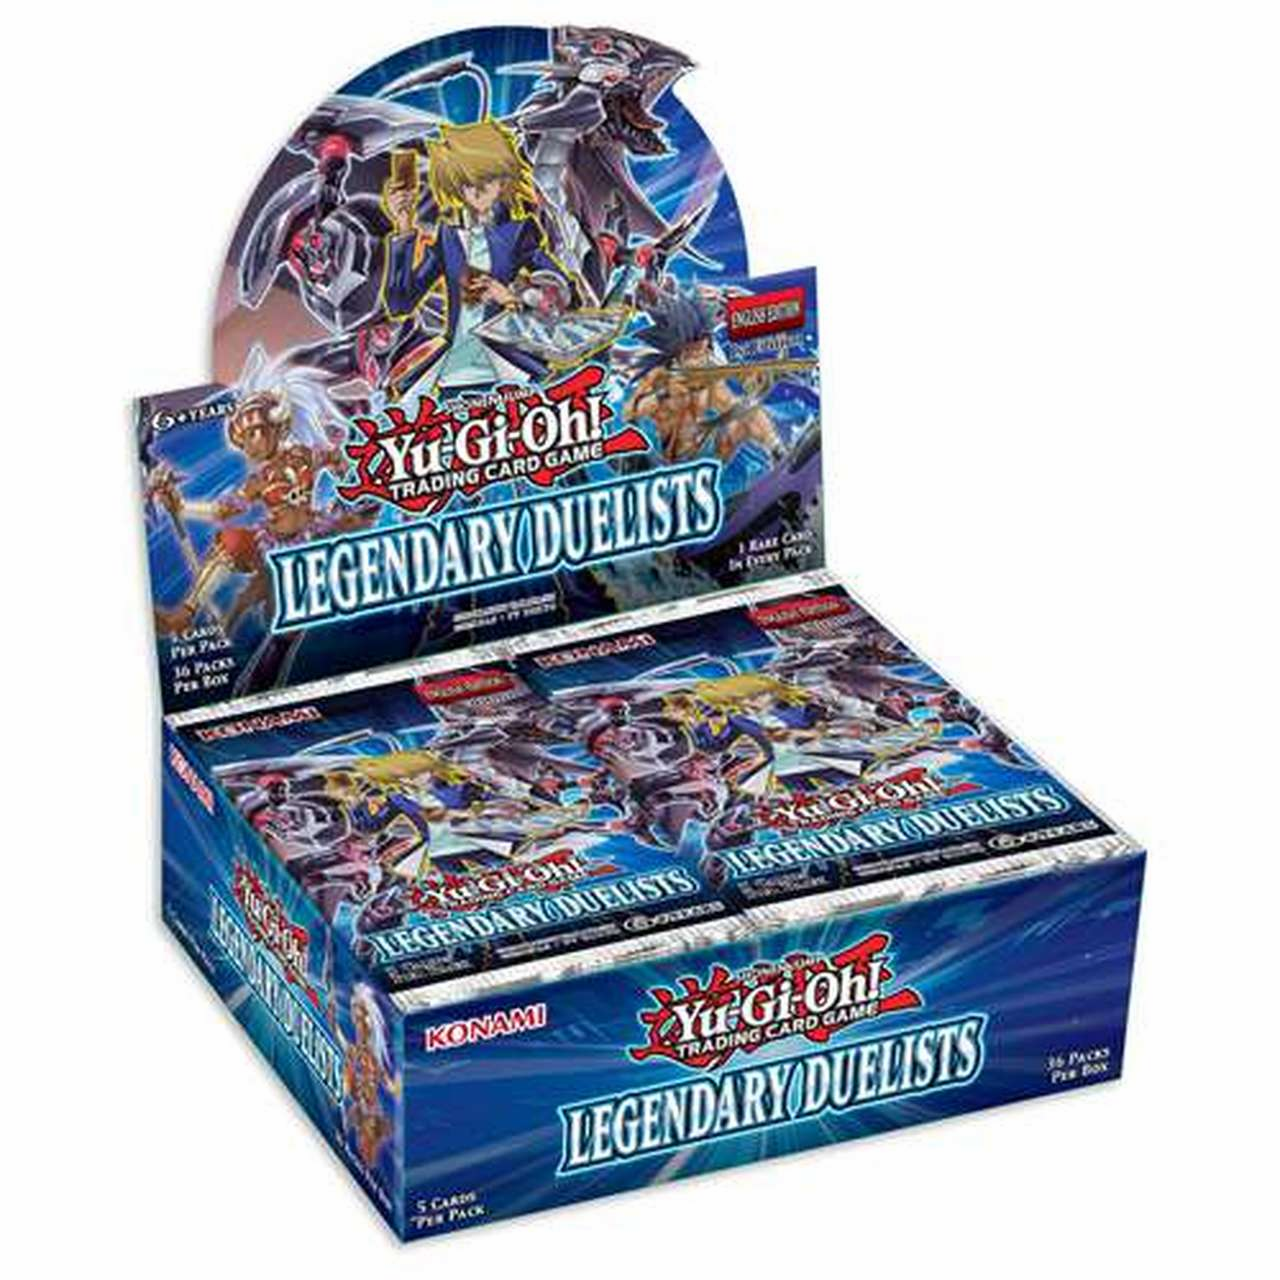 Yu-Gi-Oh Legendary Duelists Sealed Booster Box